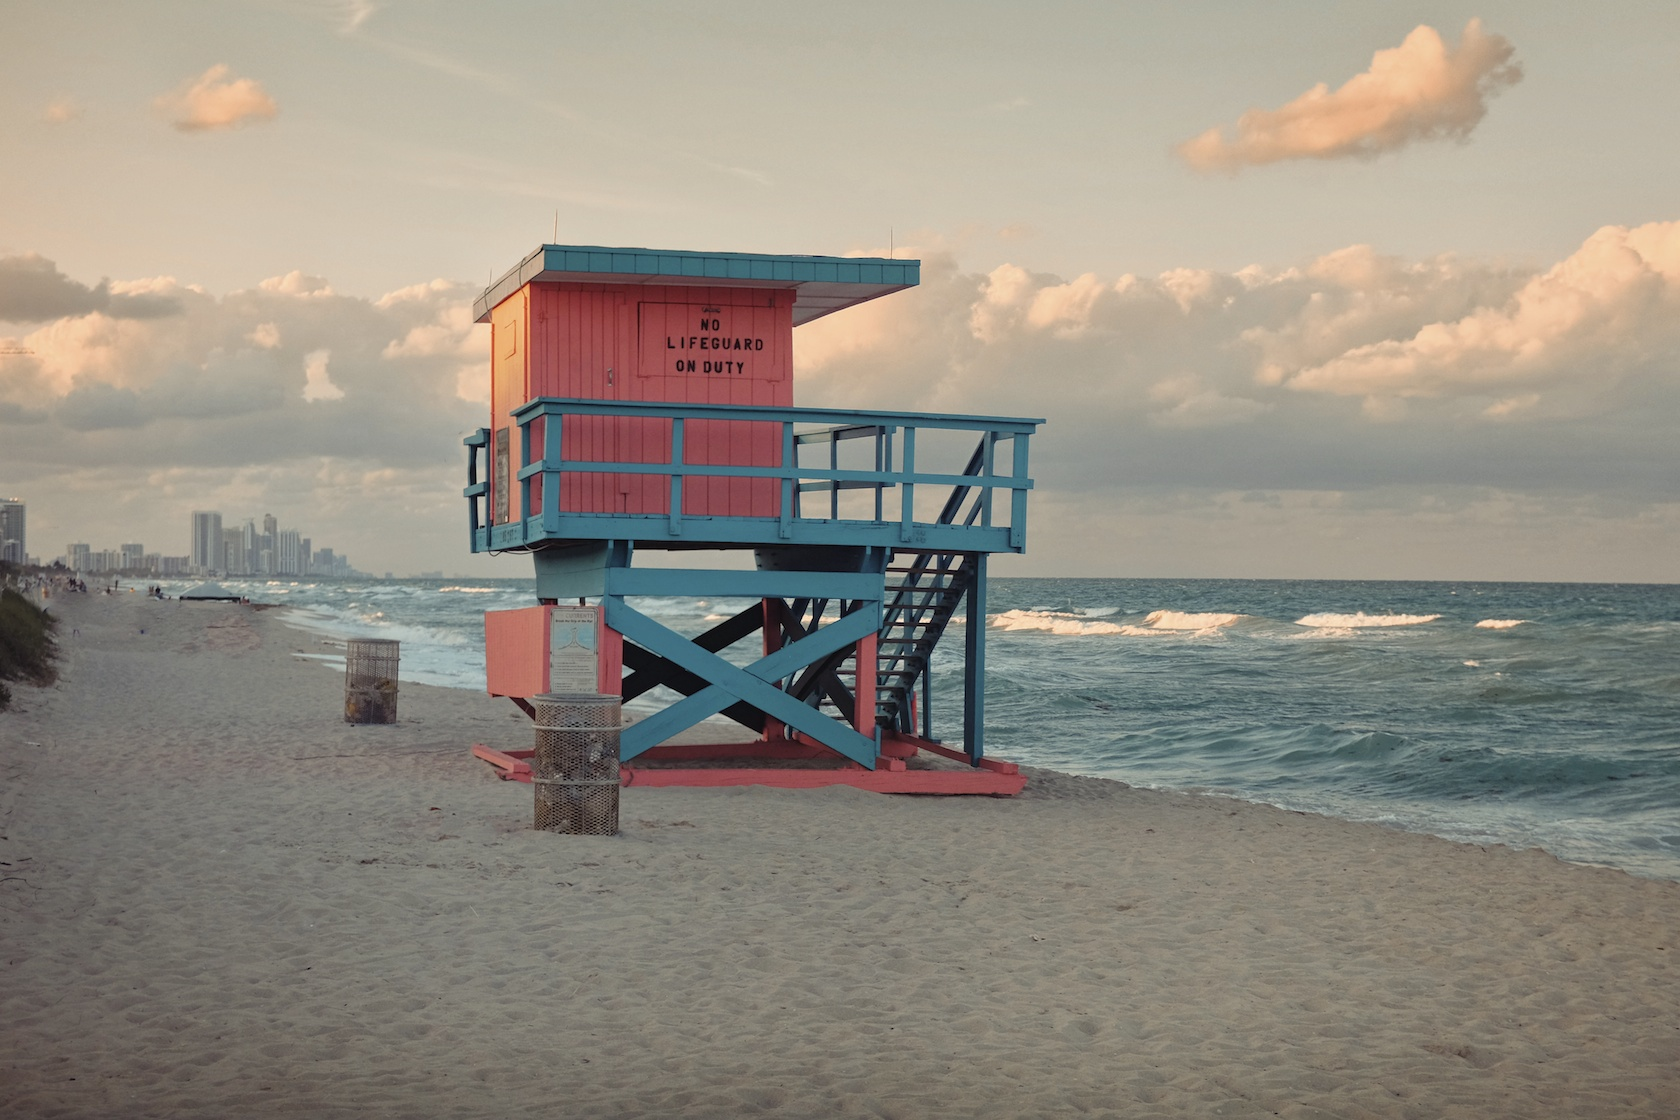 """85th Street: """"They painted this one different colors than the original, but I like how the railing matches the ocean and you have that Miami, flamingo pink."""" (Sean R. Sullivan, seanwashere.com)"""